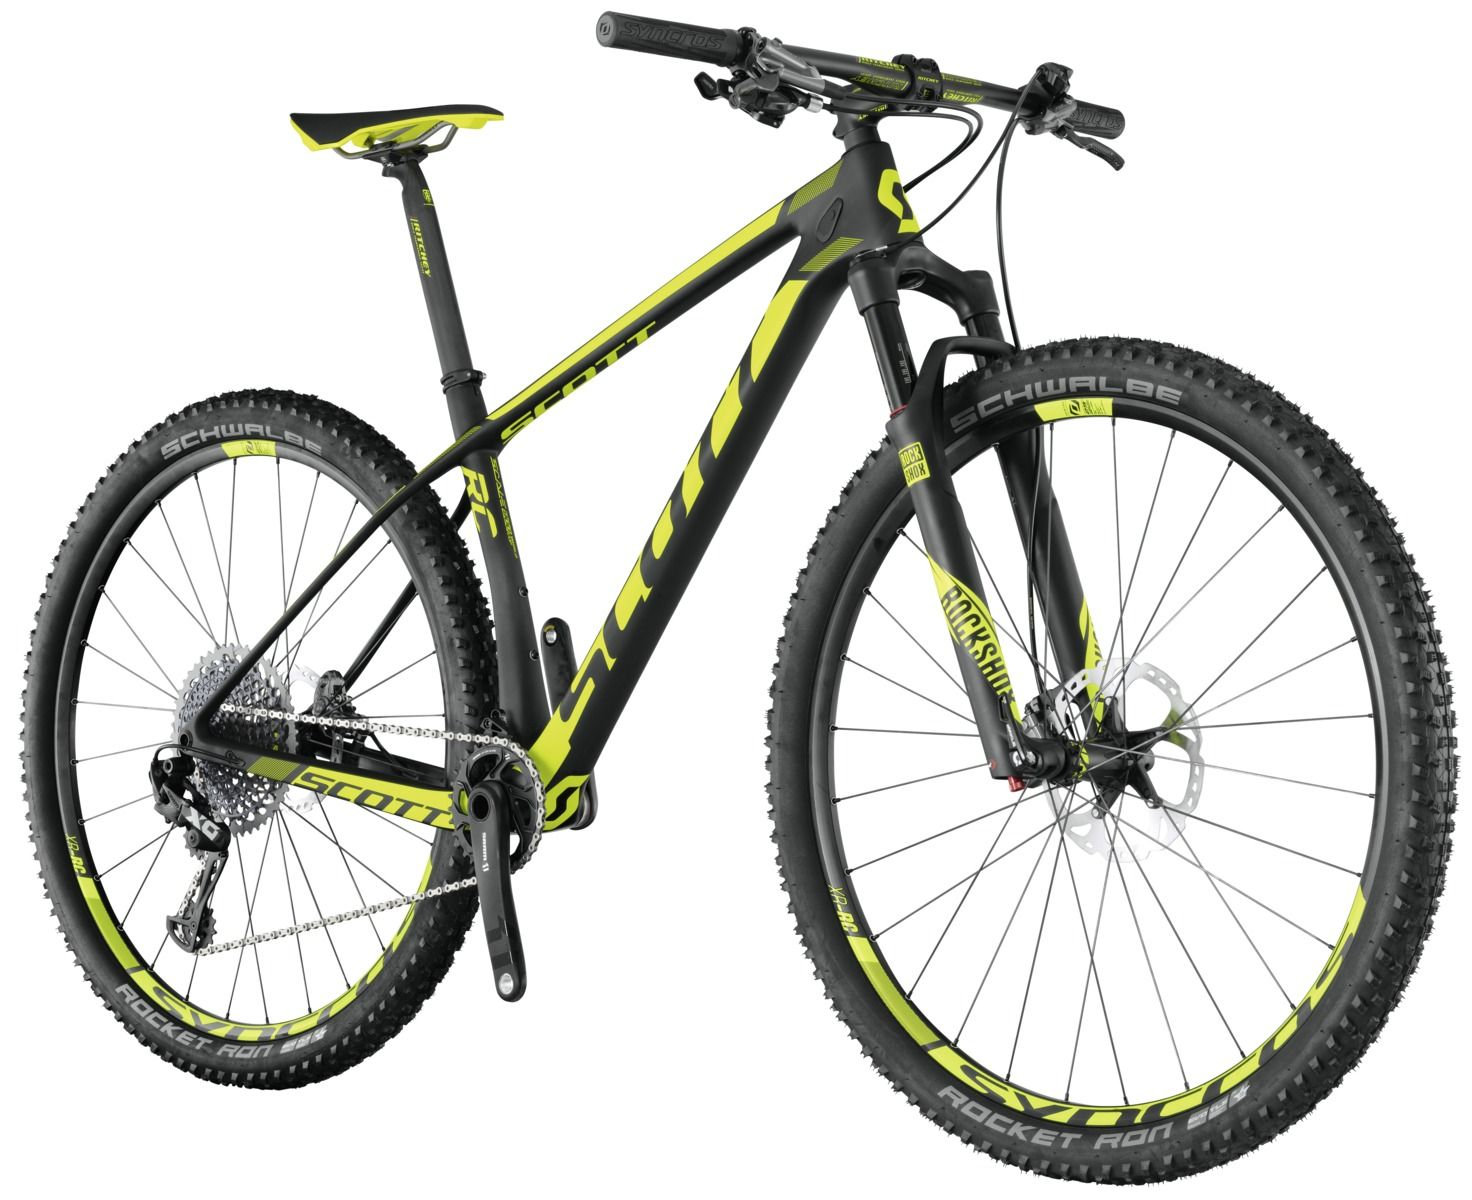 New For 2017 Scott Releases Two Of The Lightest Xc Mountain Bikes